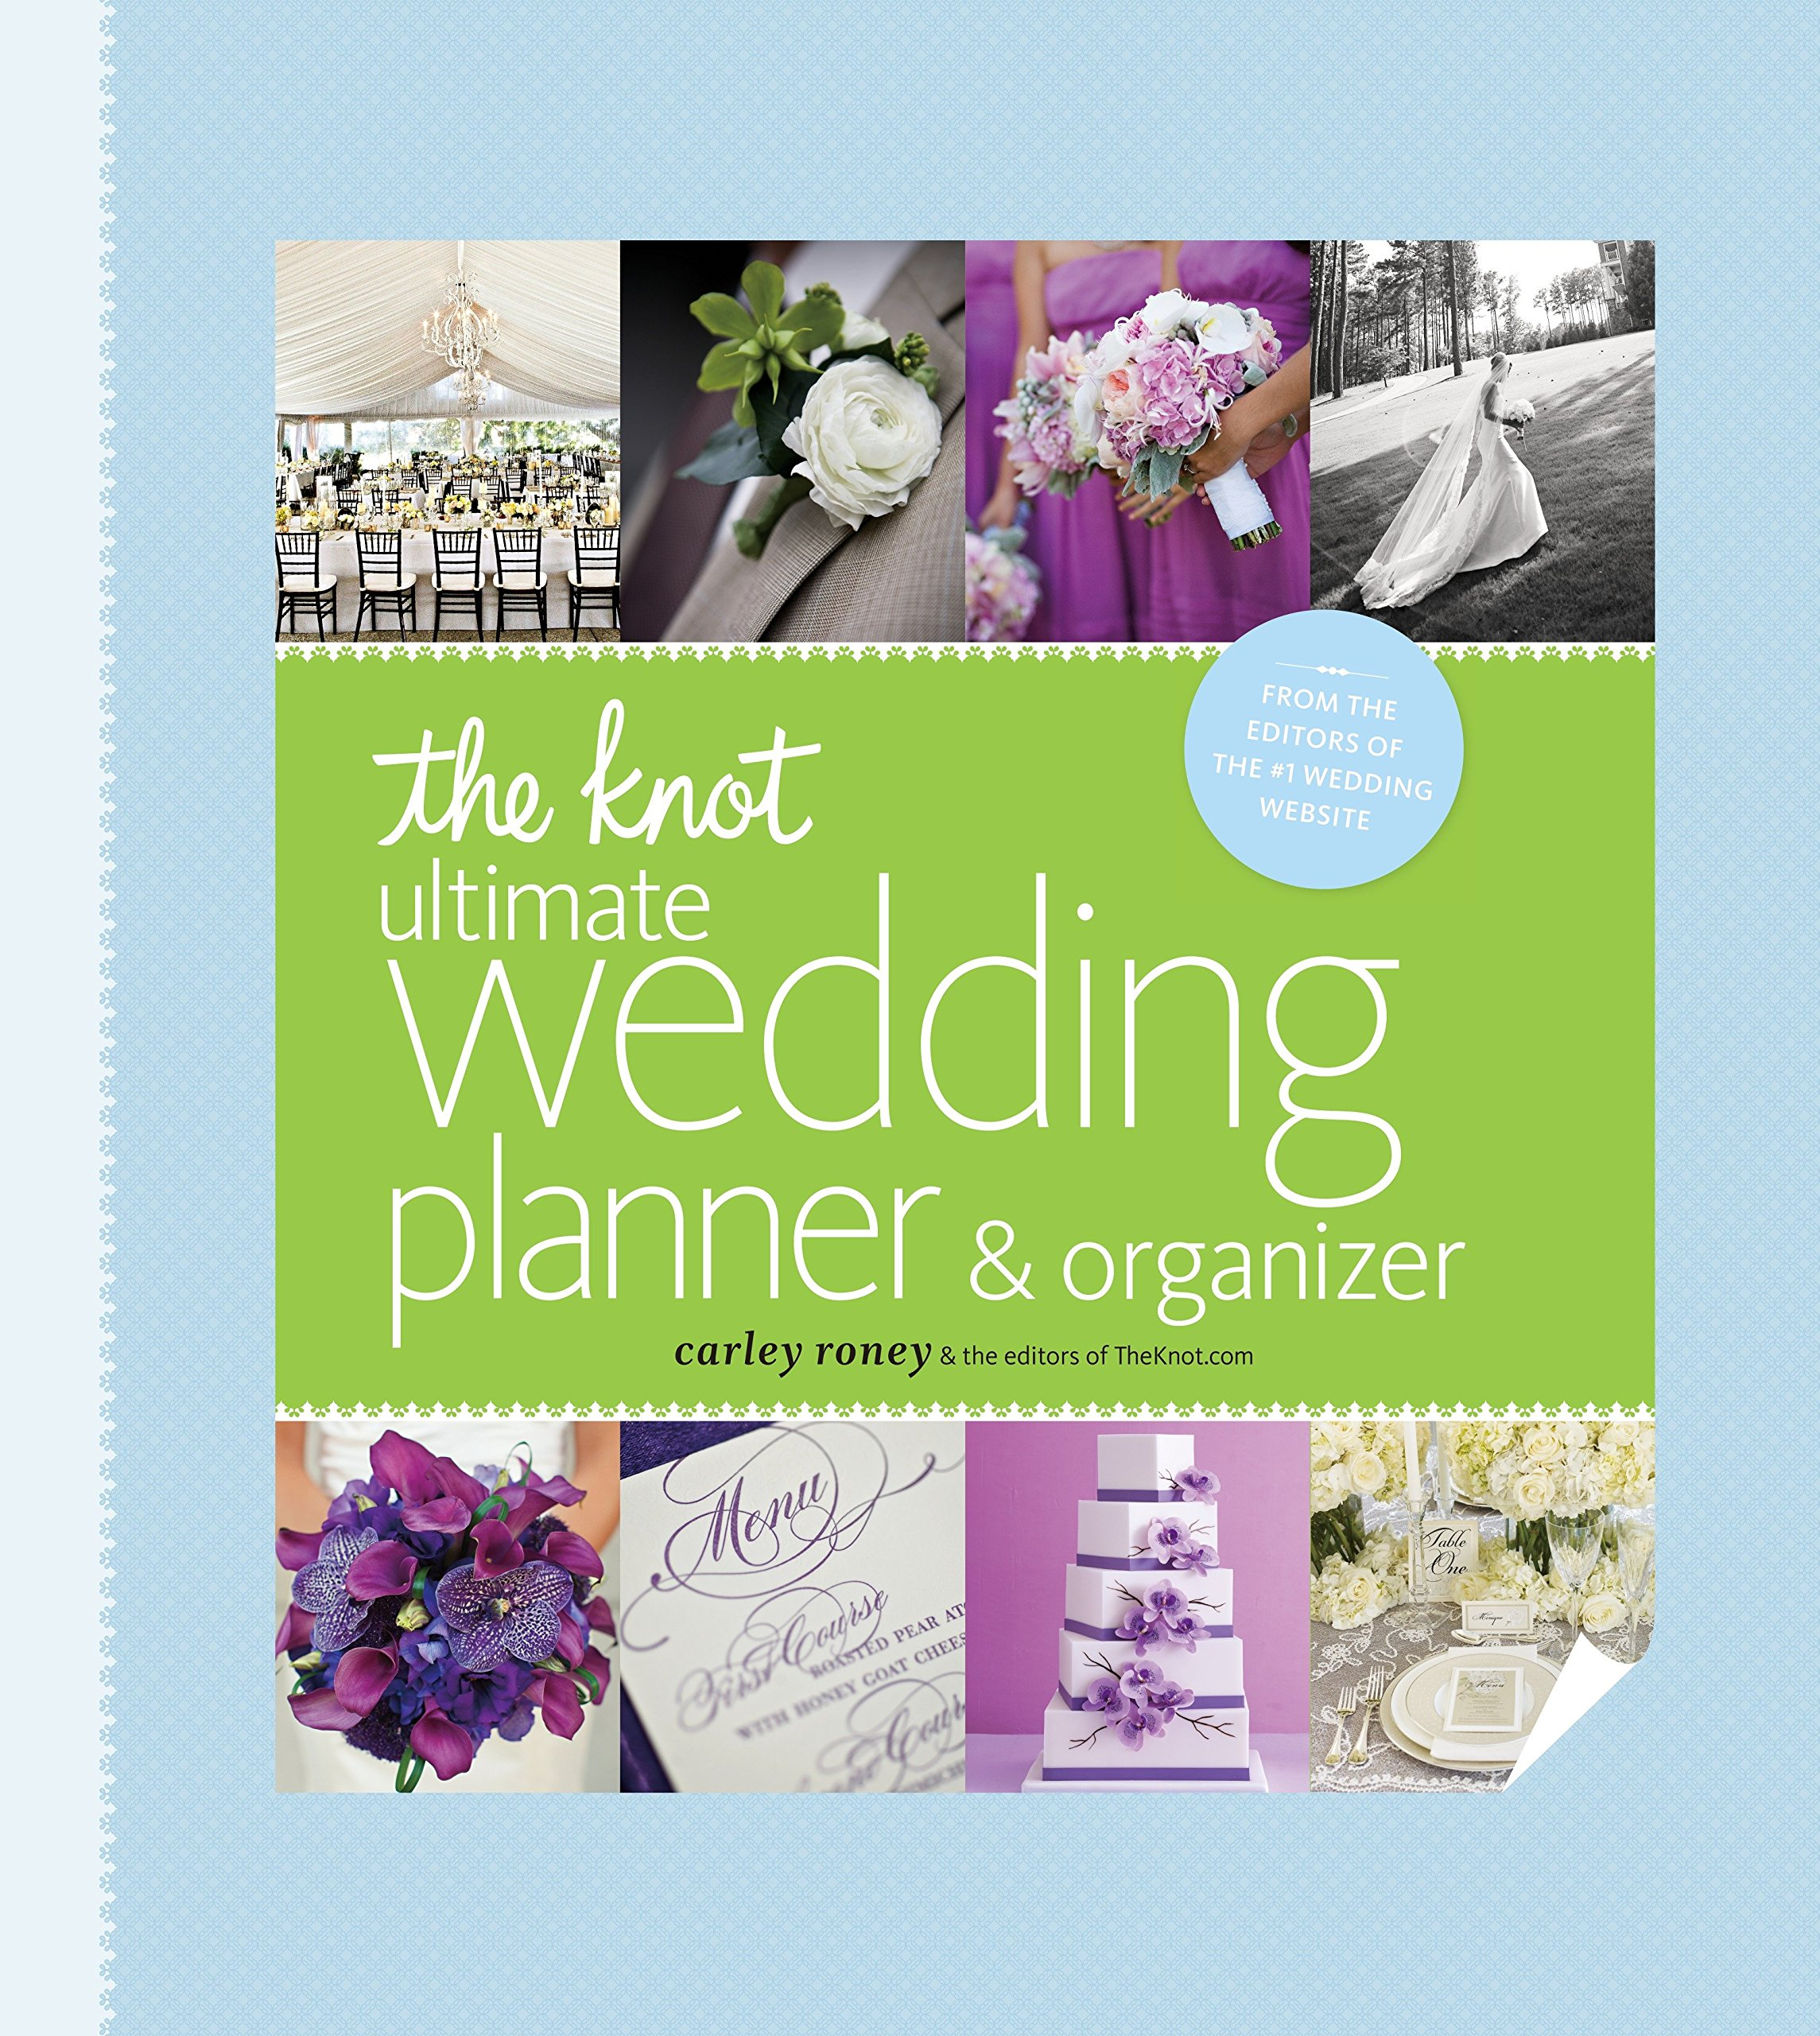 The Knot Ultimate Wedding Planner & Organizer [binder edition]: Worksheets, Checklists, Etiquette, Calendars, and Answers to Frequently Asked Questions by Potter Crafts